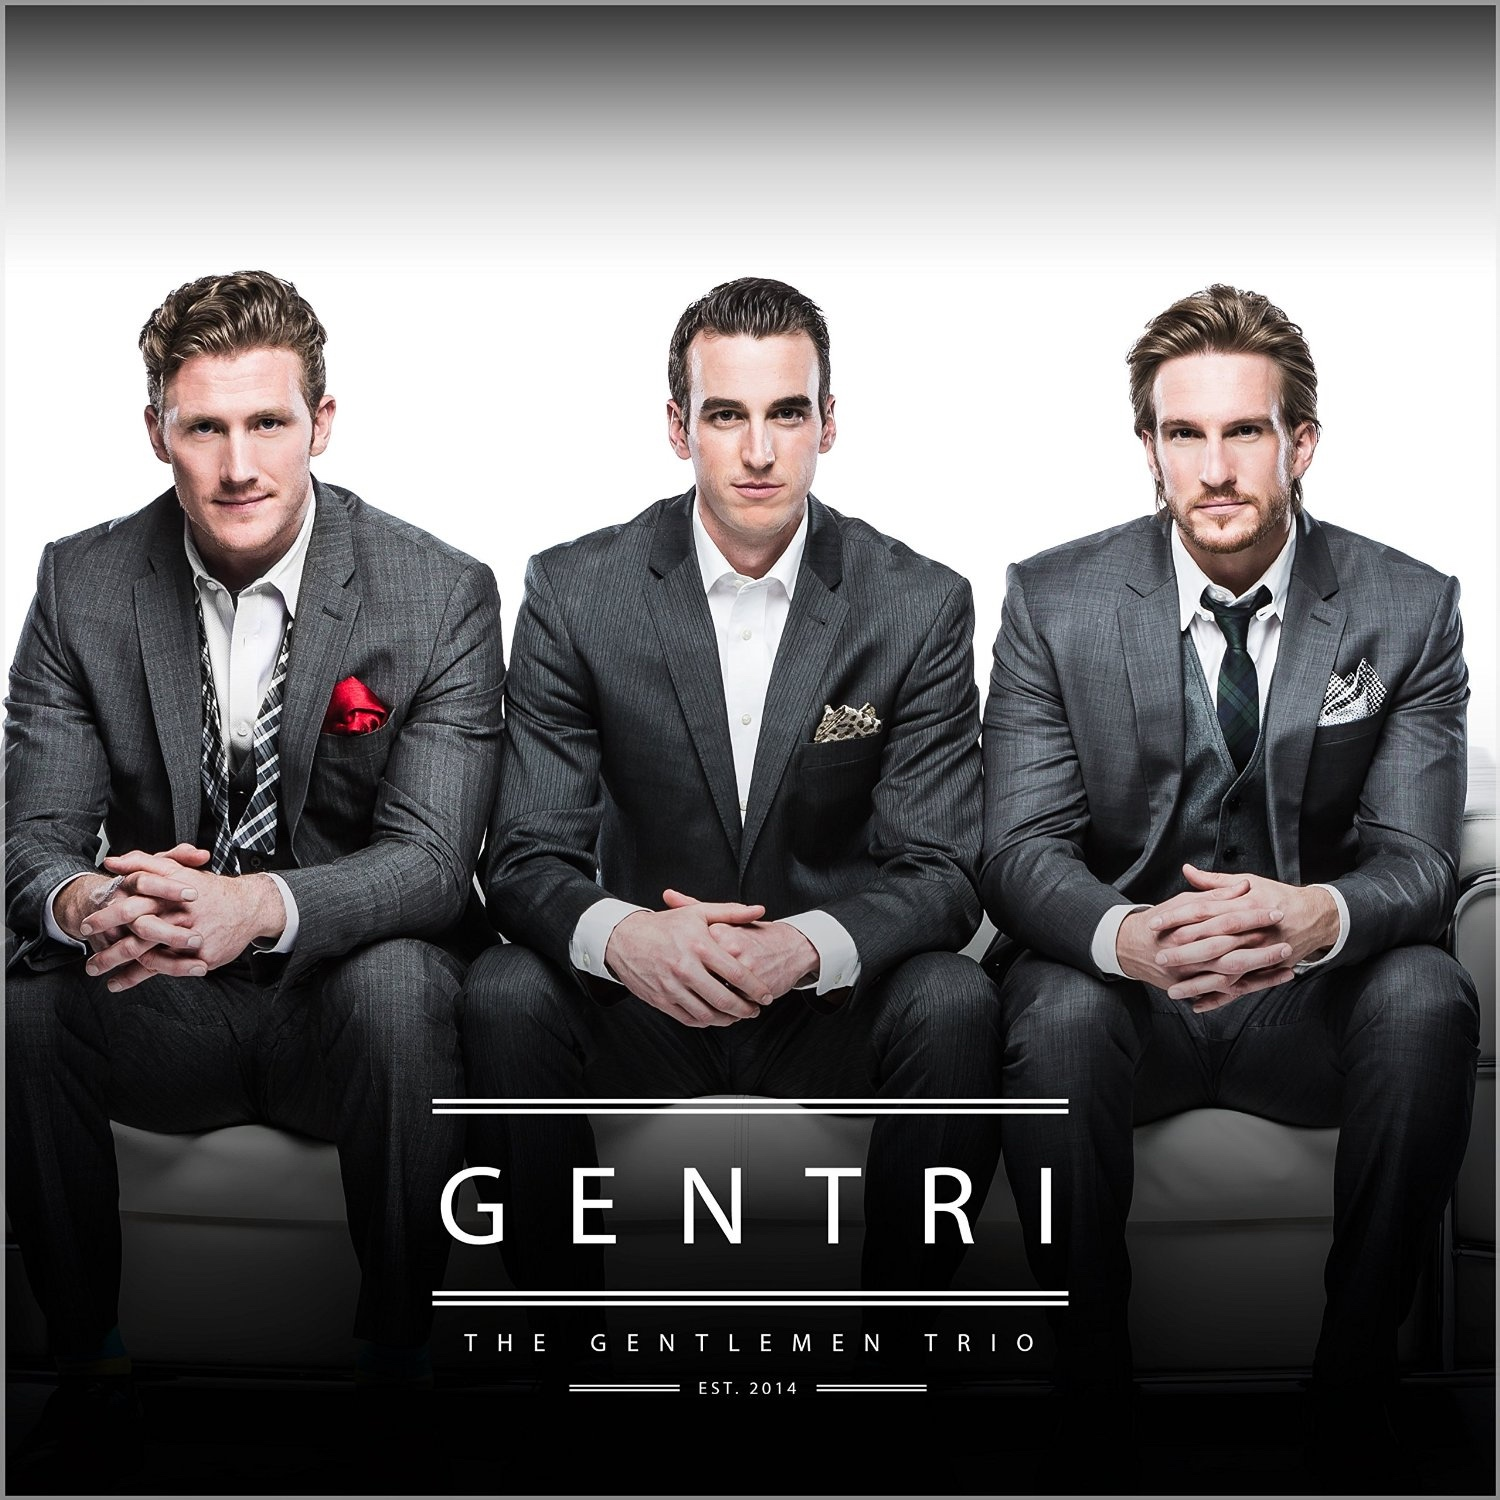 Image for Gentri - The Gentlemen Trio